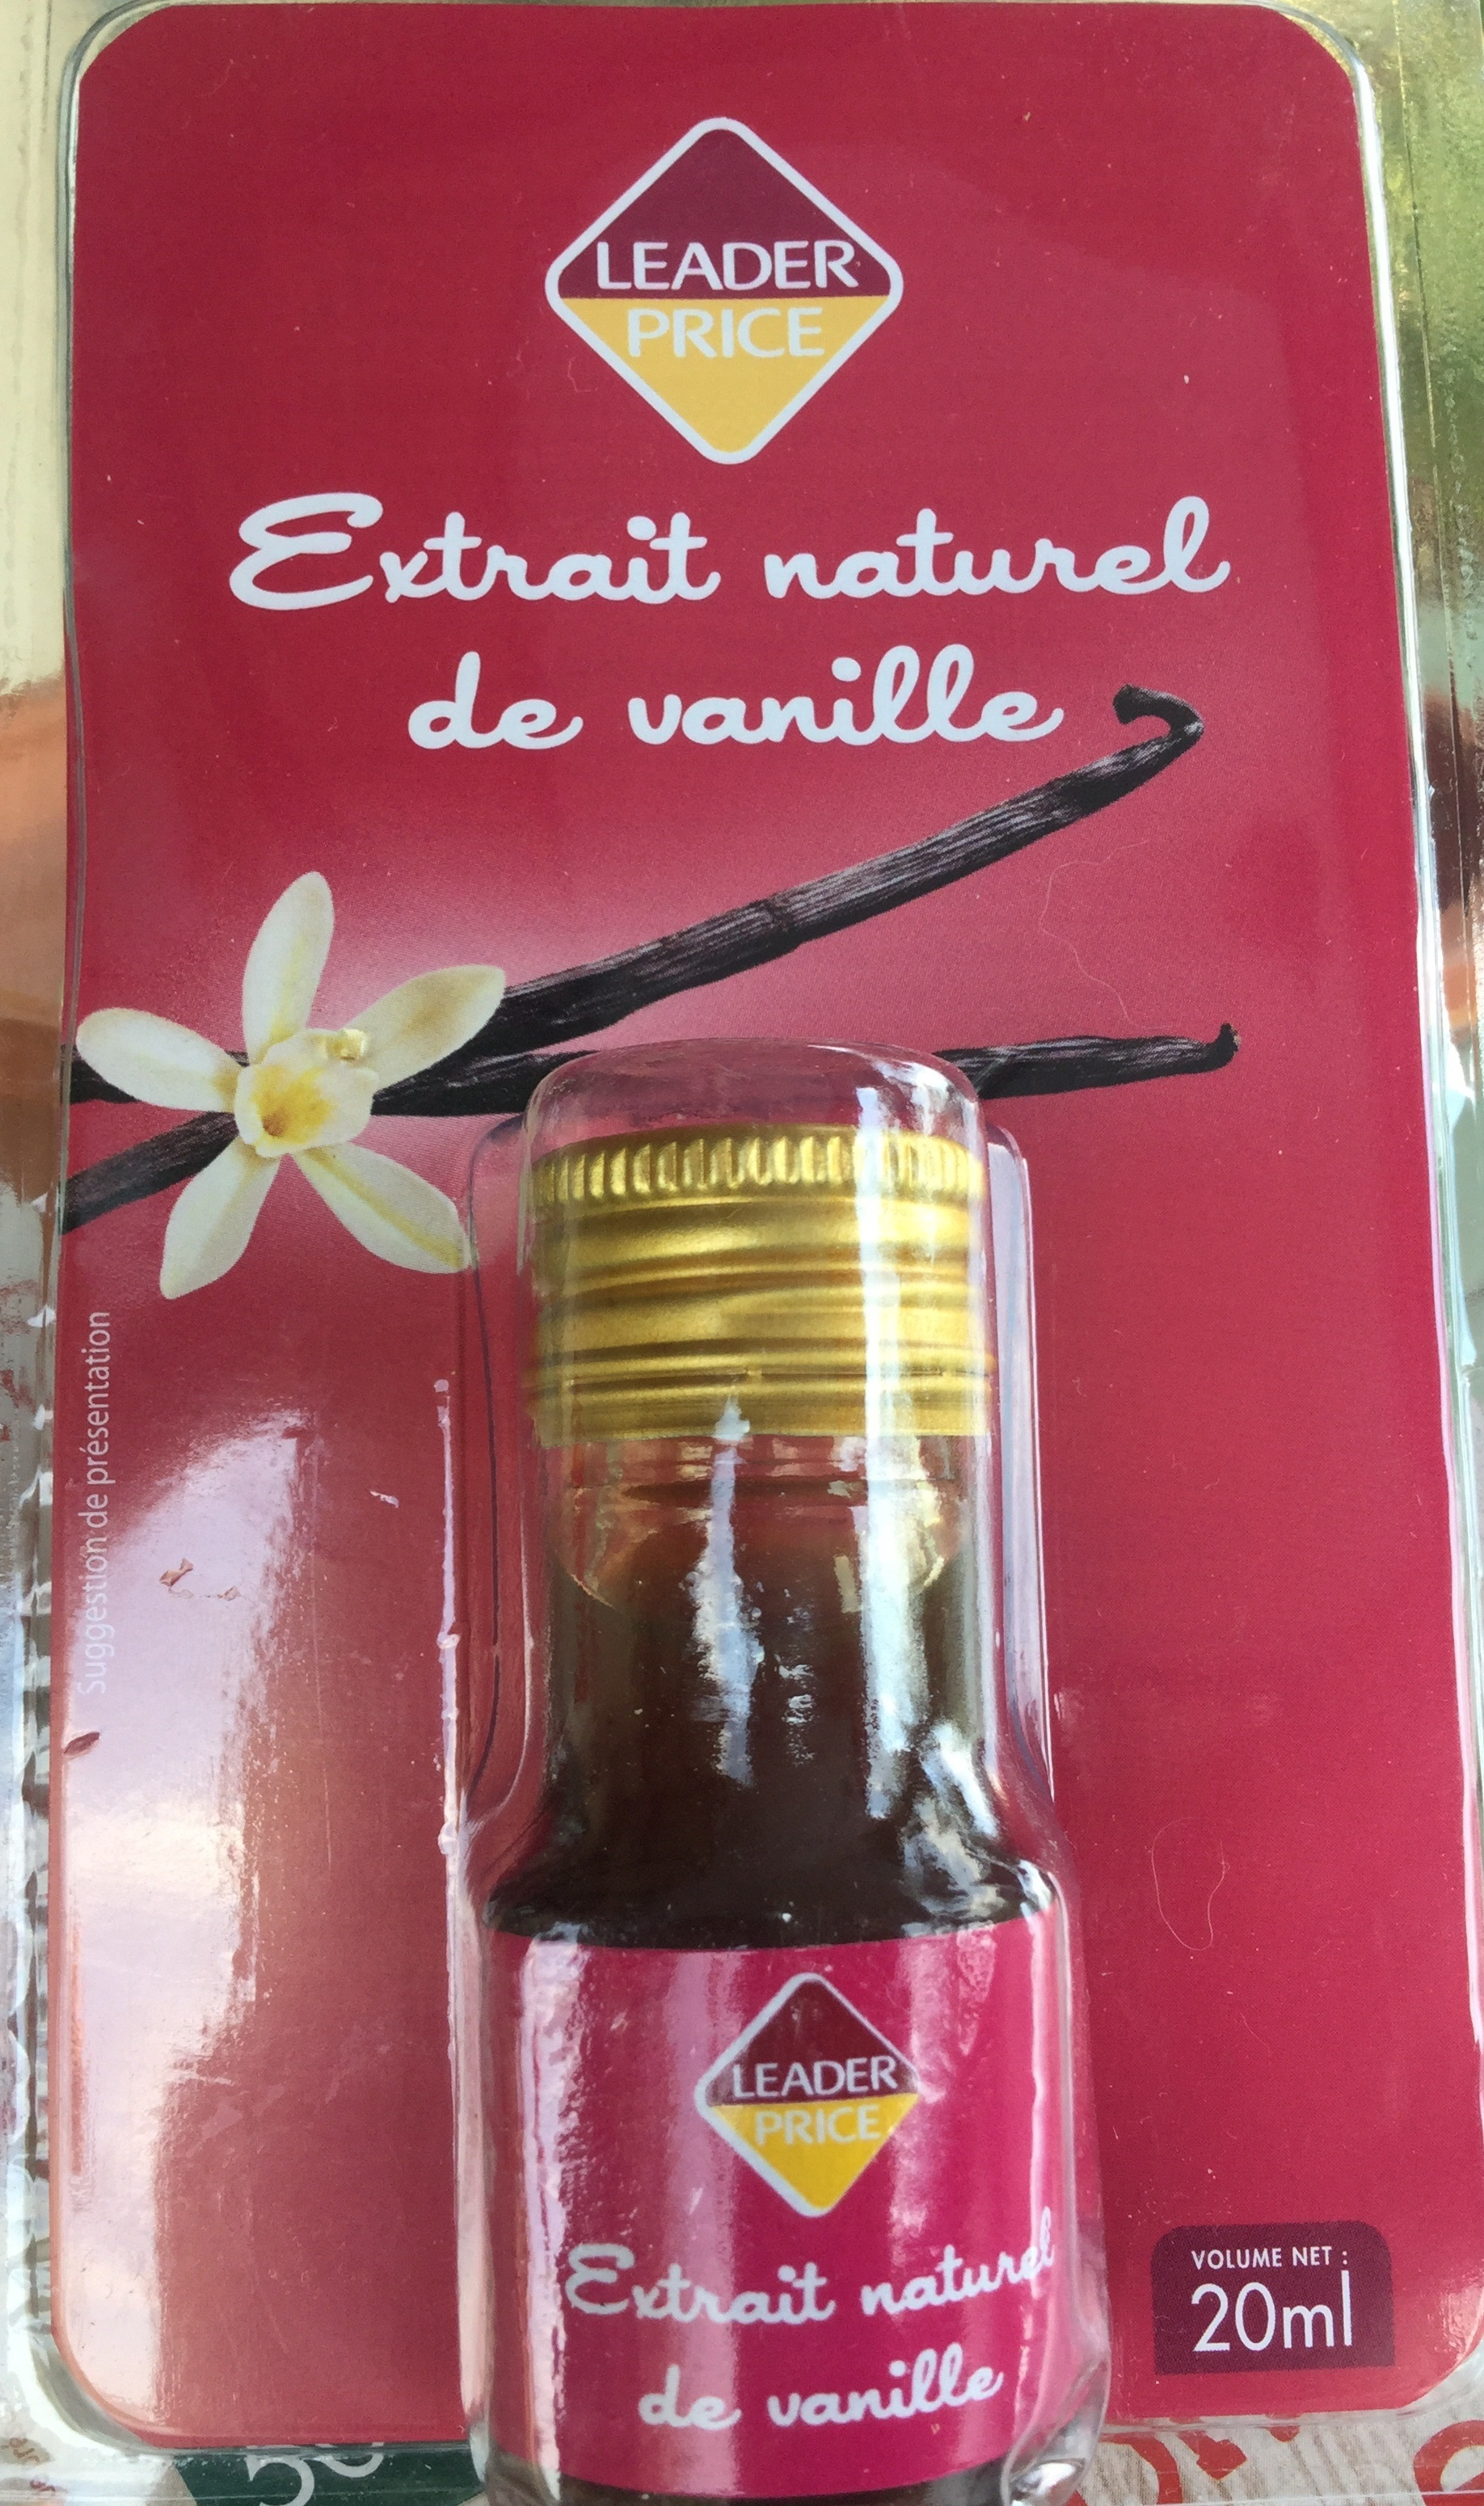 Extrait naturel de vanille - Product - fr